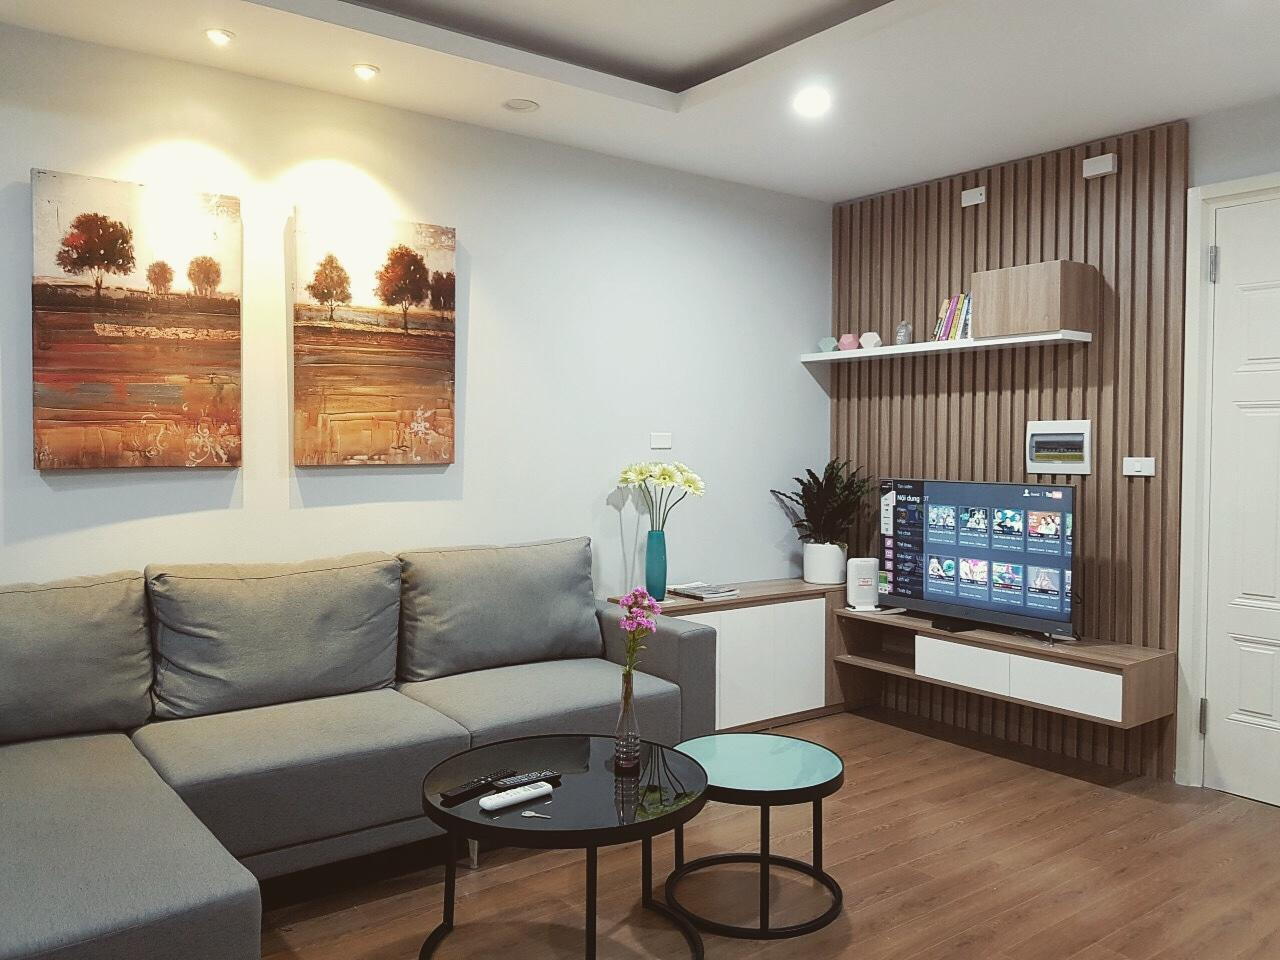 Vhomestay Apartment For Rent